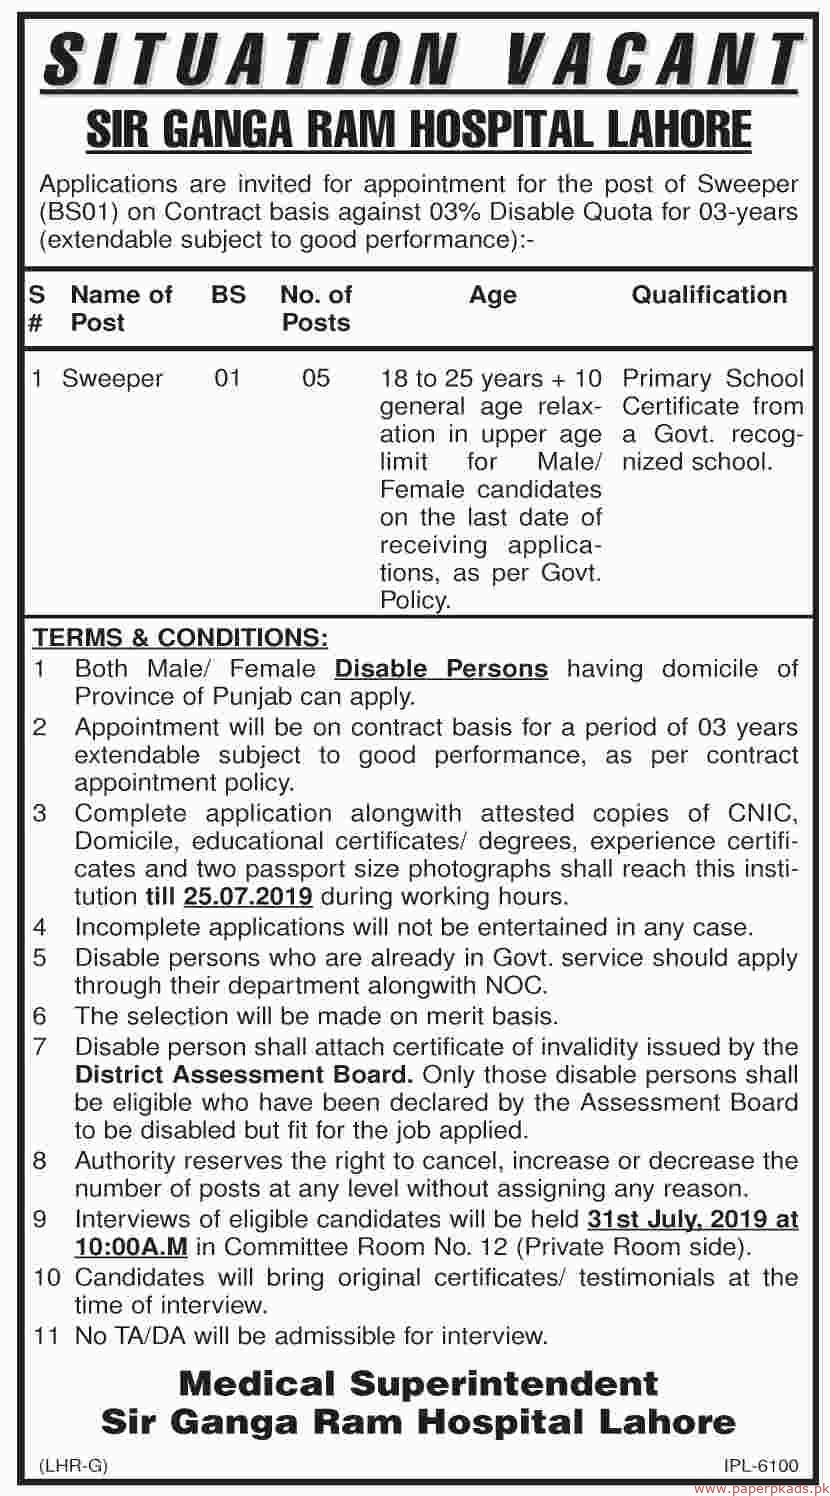 Sir Ganga Ram Hospital Lahore Jobs 2019 Latest